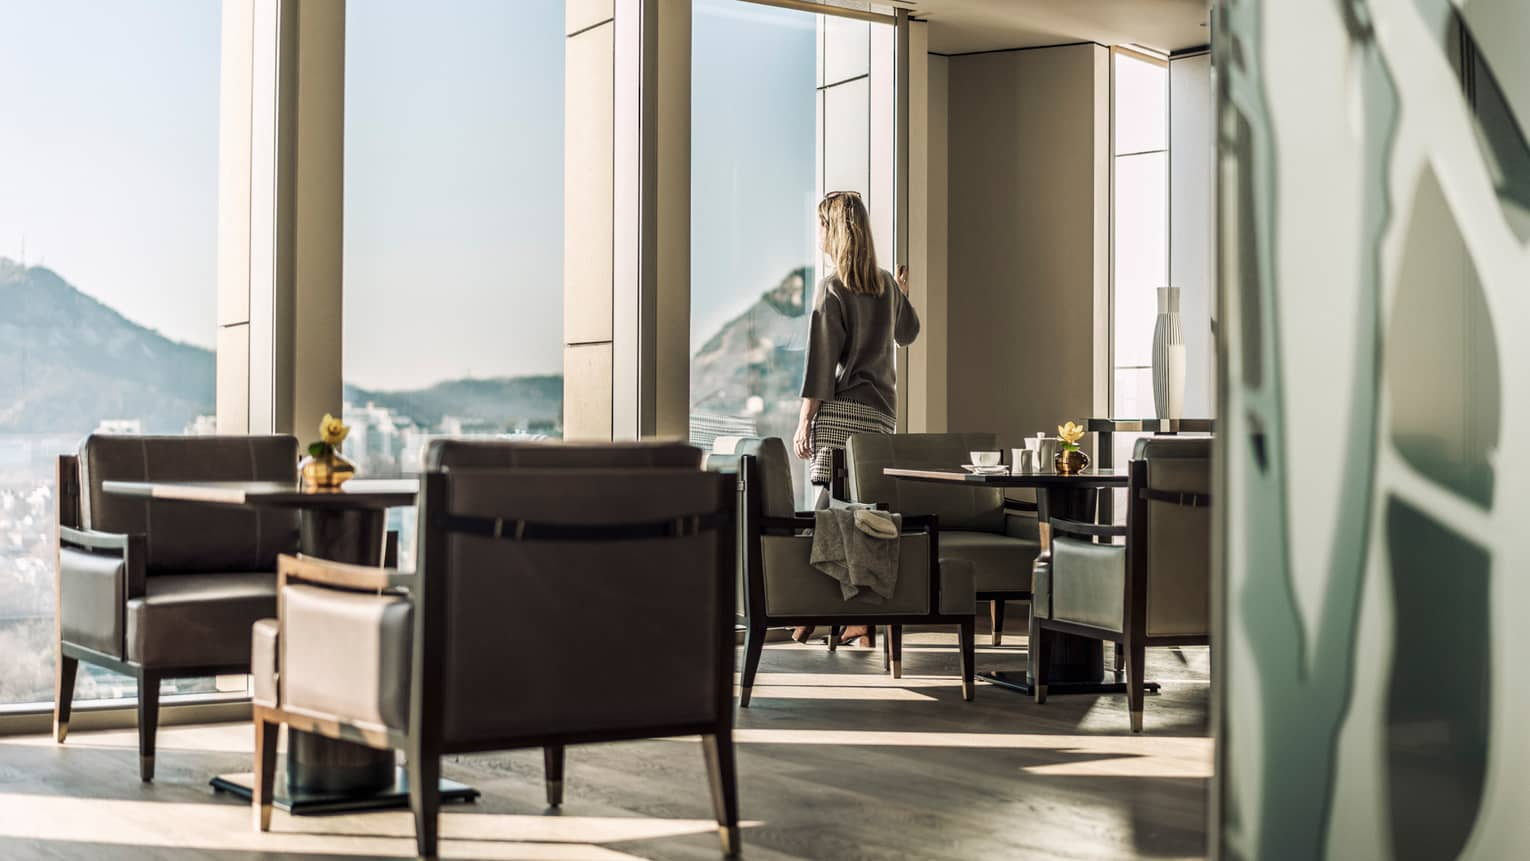 Woman stands at sunny floor-to-ceiling window and looks out at view, near lounge tables, chairs